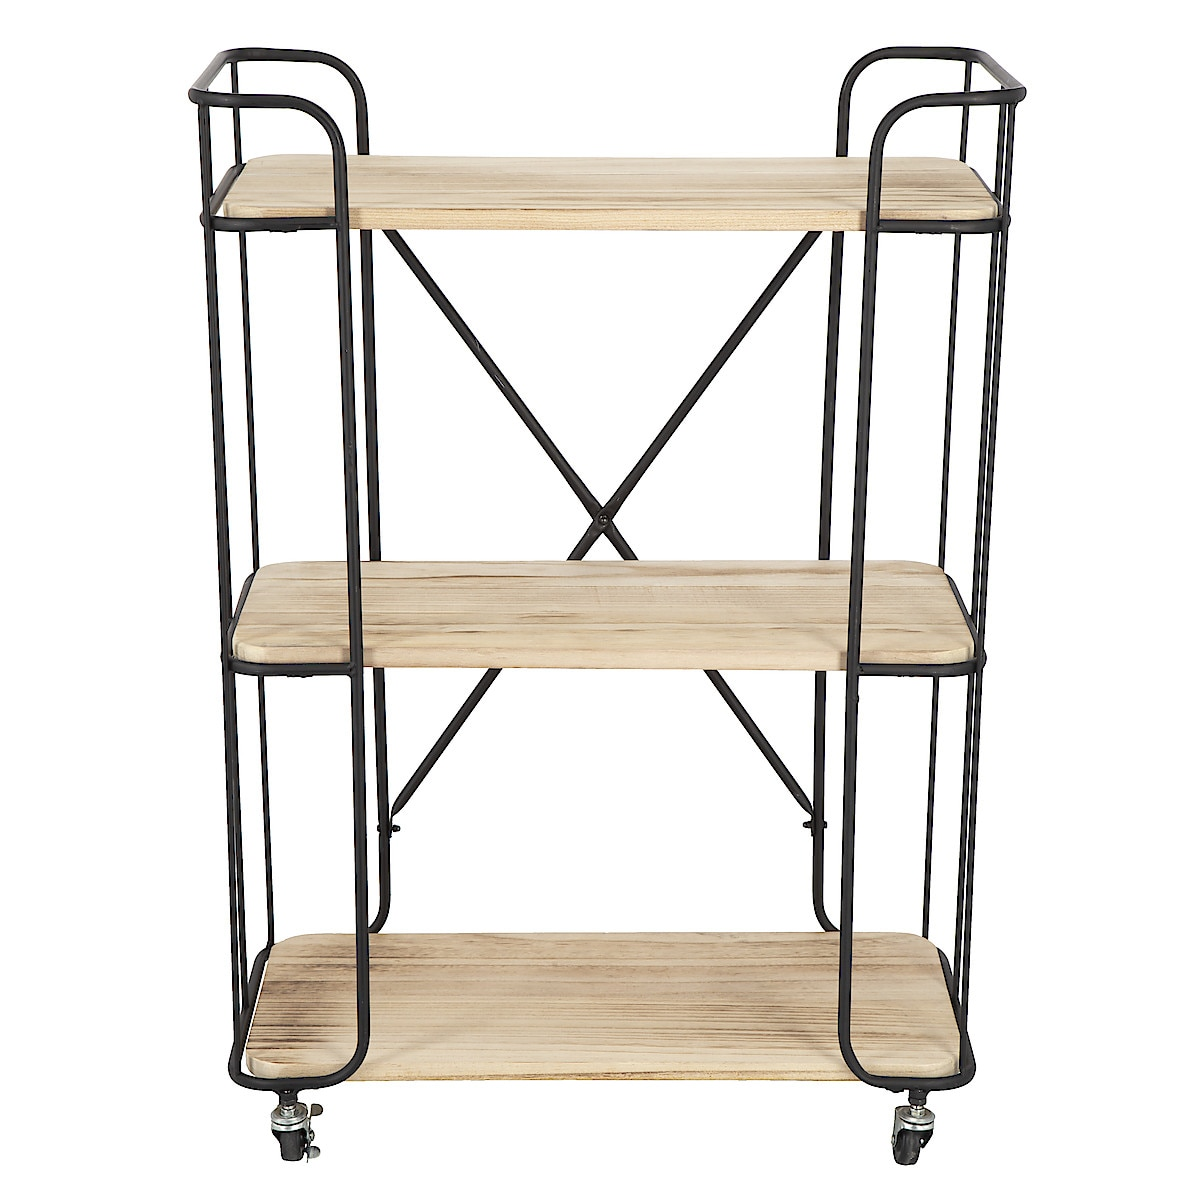 Wood/Metal Trolley Shelf Unit